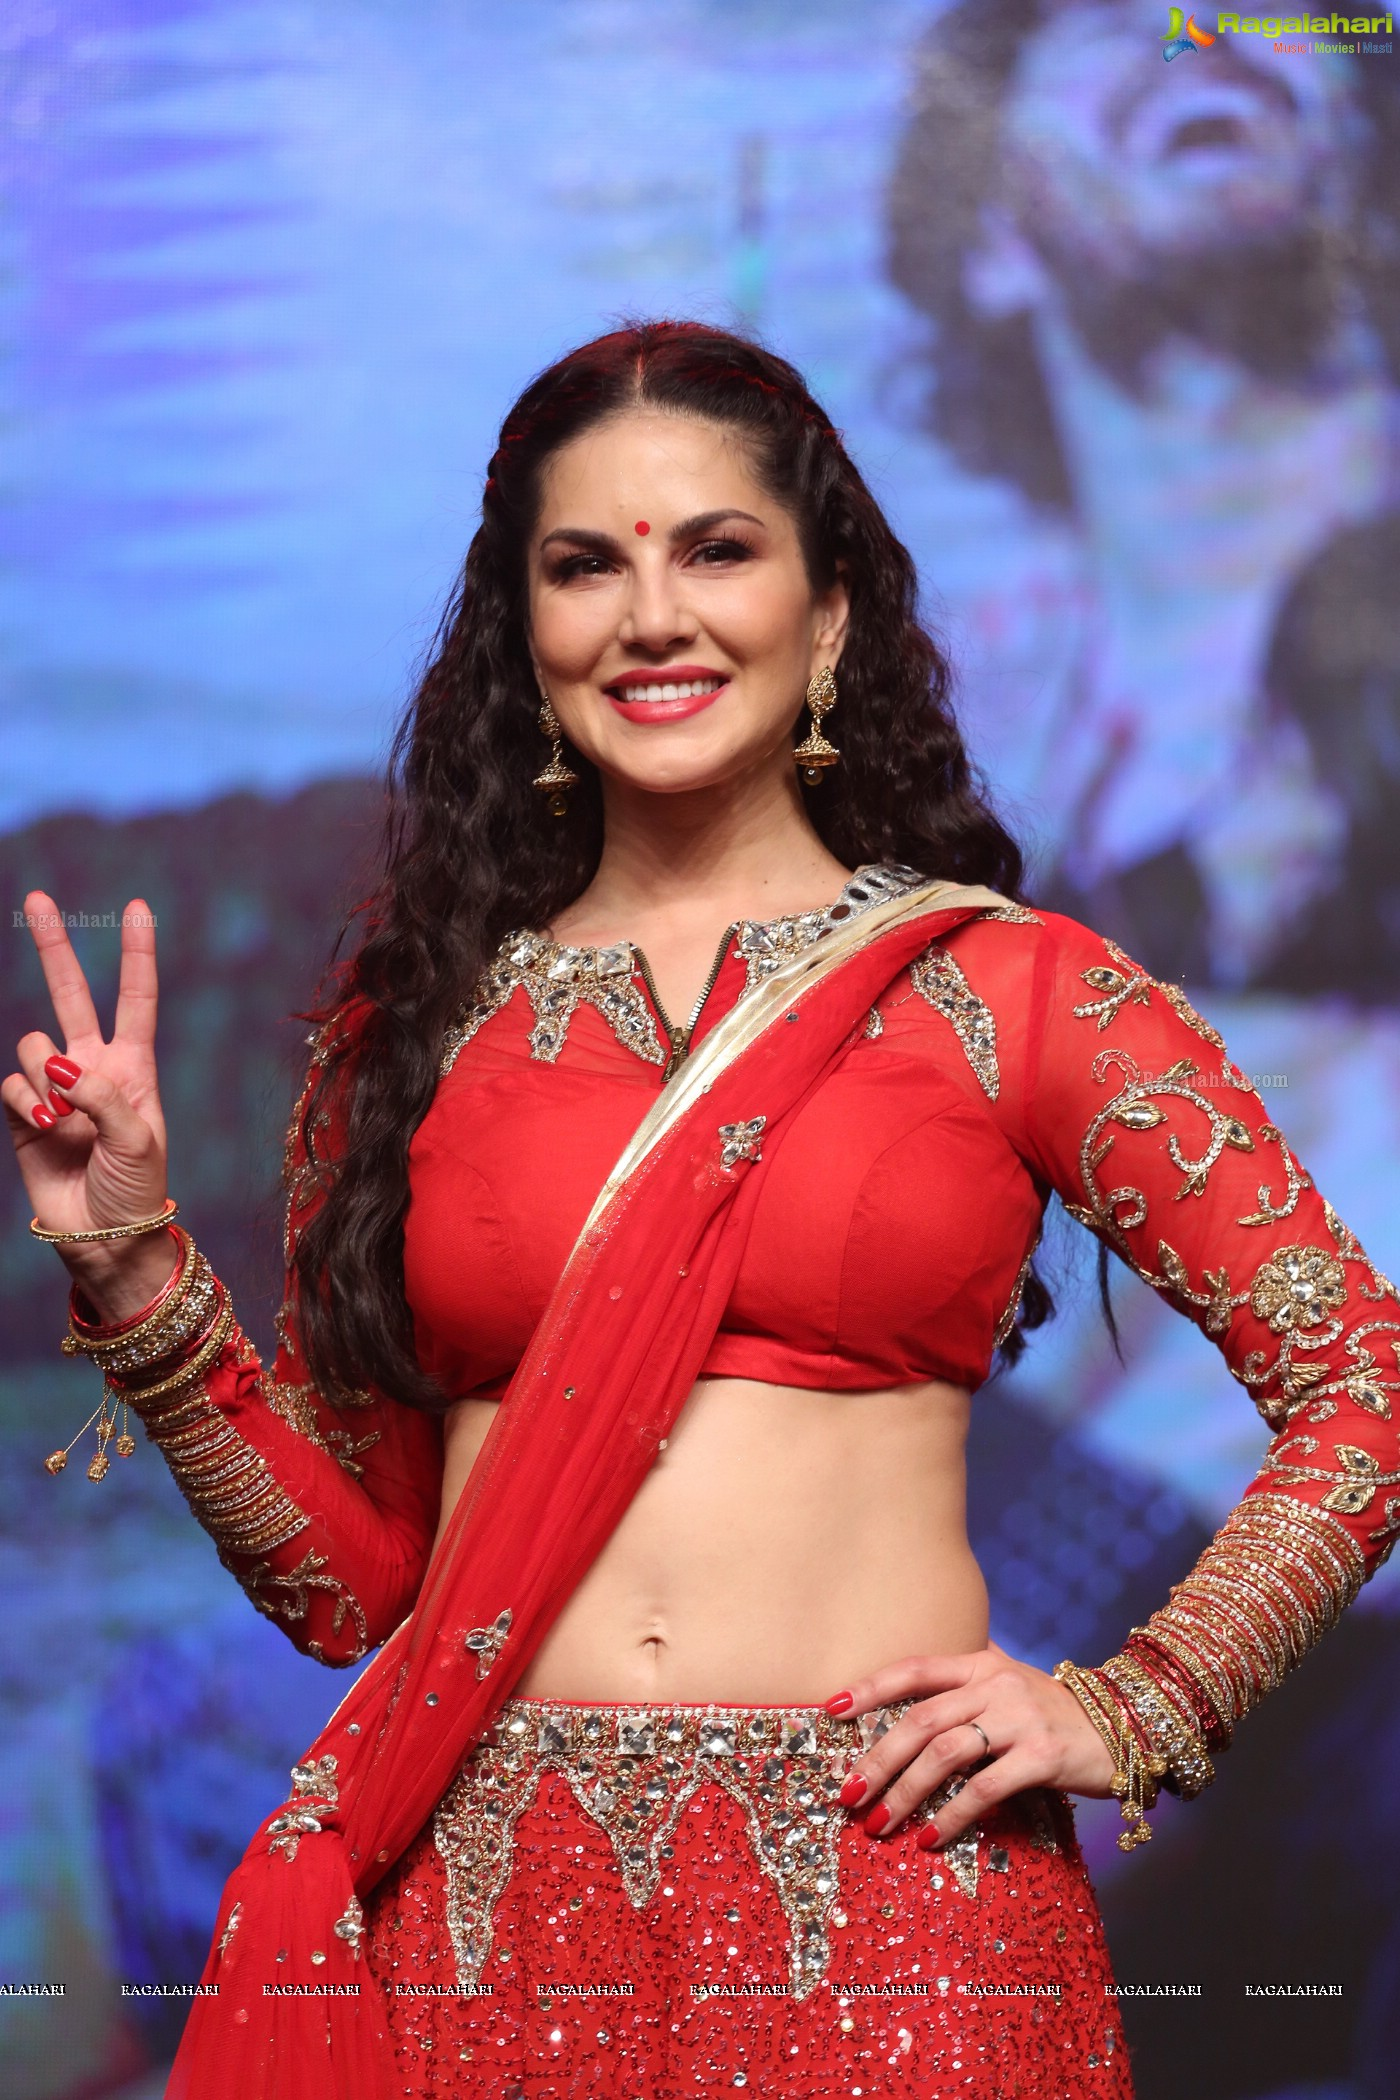 sunny leone (posters) image 18 | tollywood heroines gallery,images